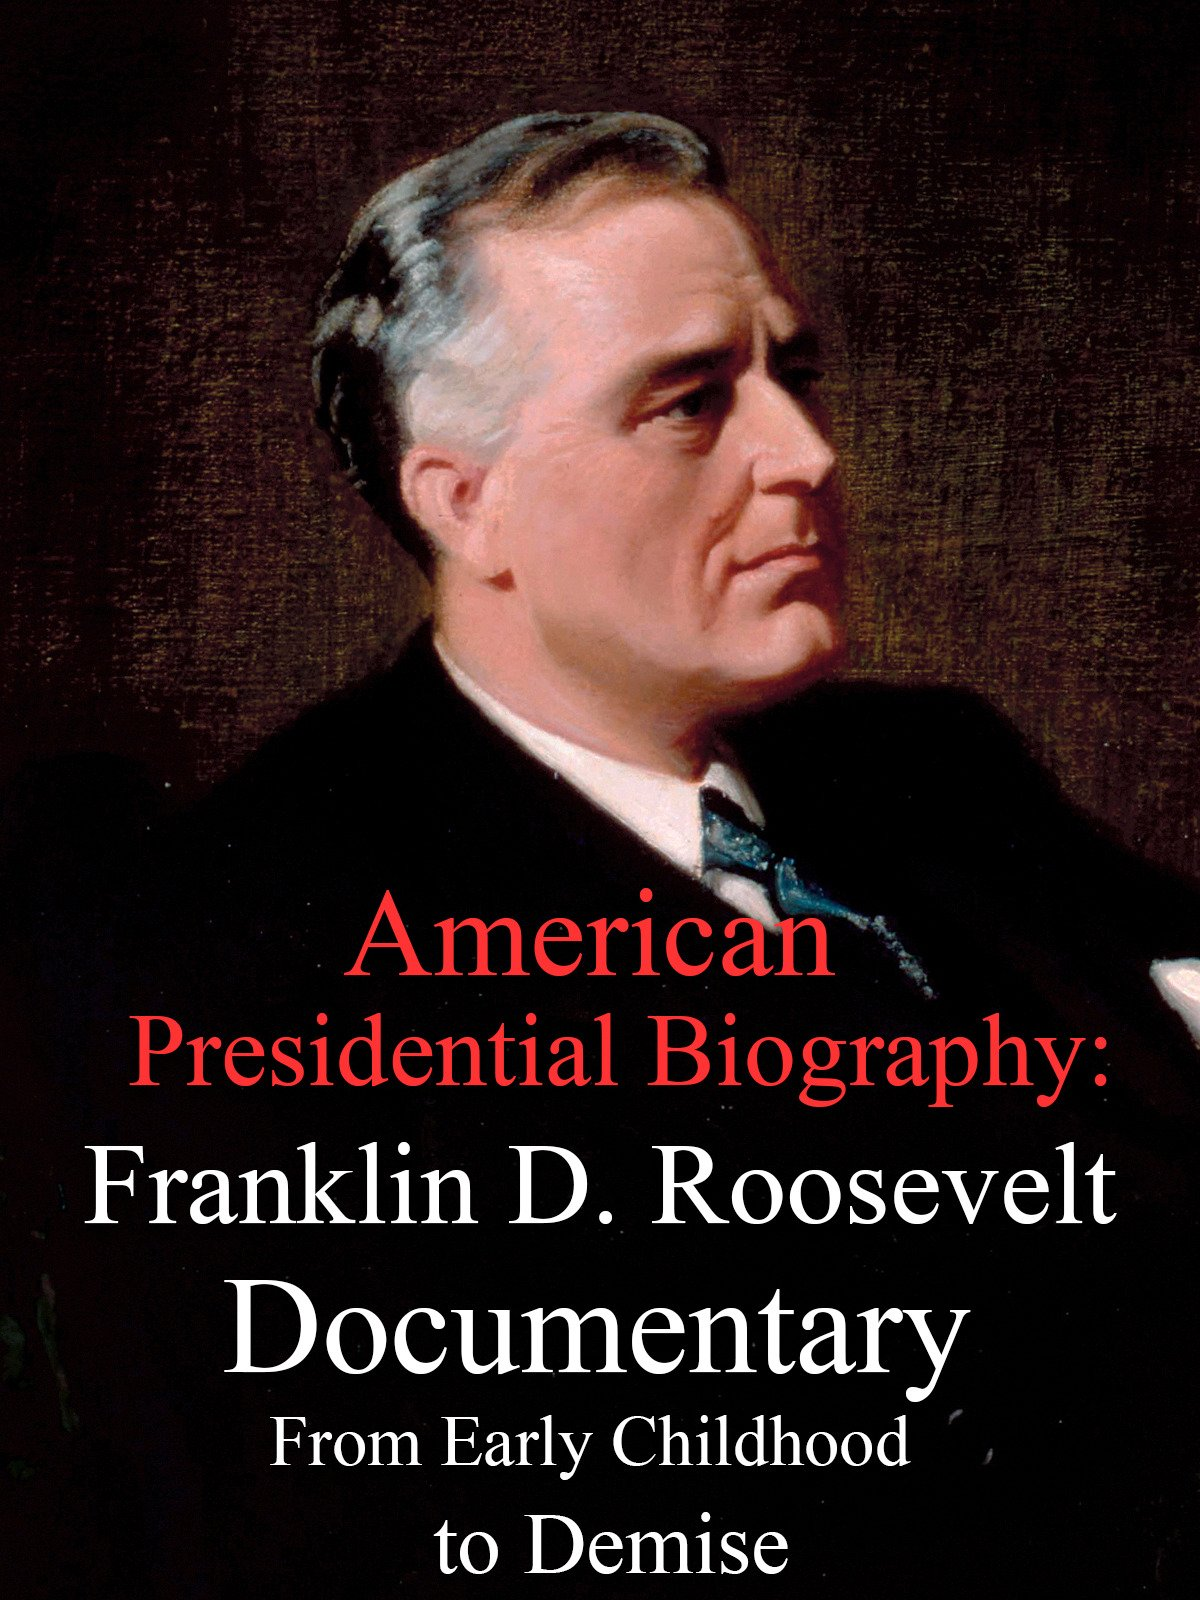 American Presidential Biography: Franklin D. Roosevelt Documentary From Early Childhood to Final Days